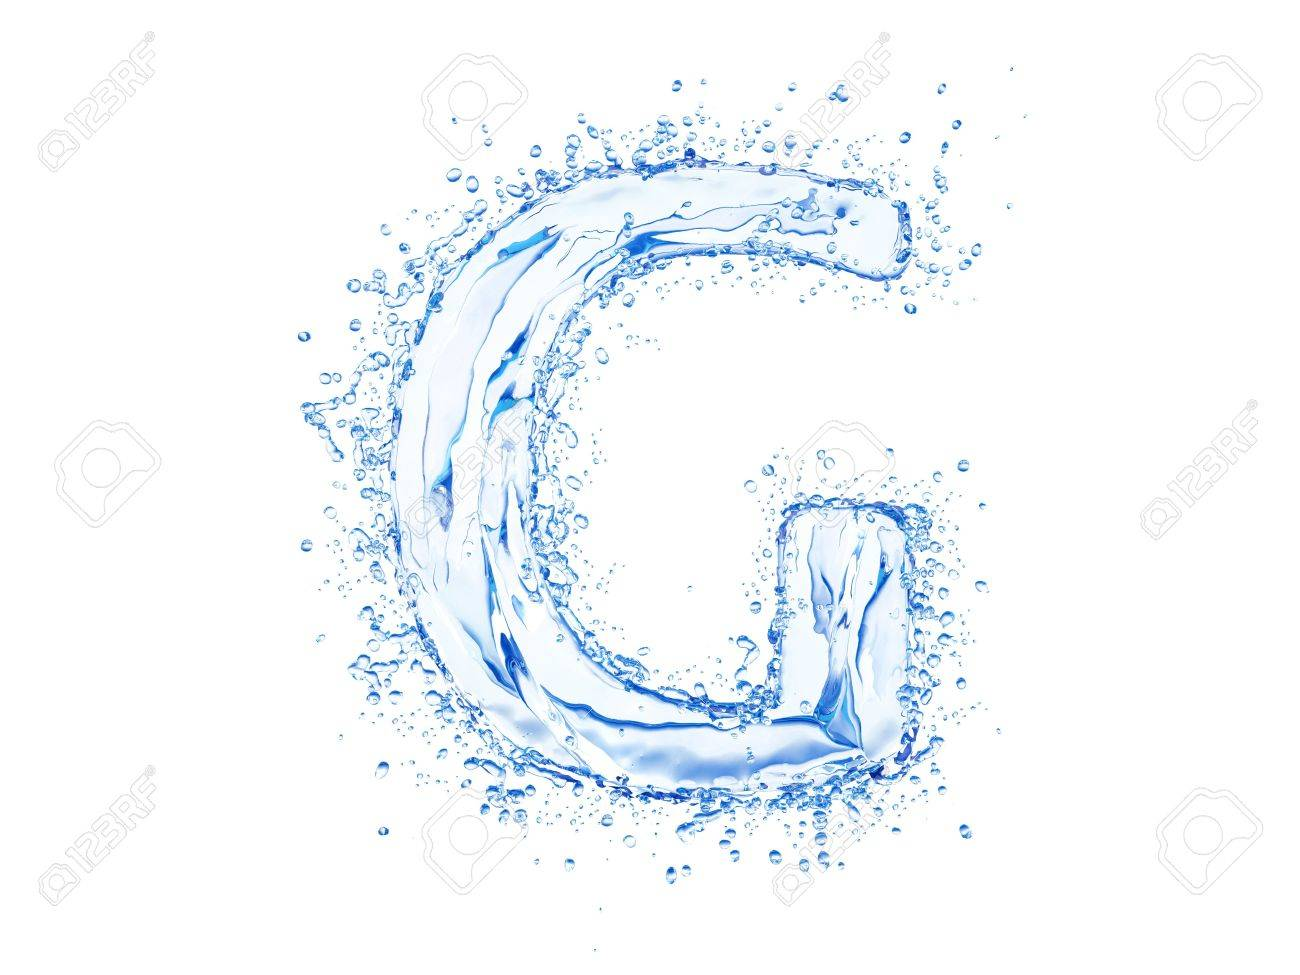 Water splash letter g upper case stock photo picture and royalty stock photo water splash letter g upper case altavistaventures Images